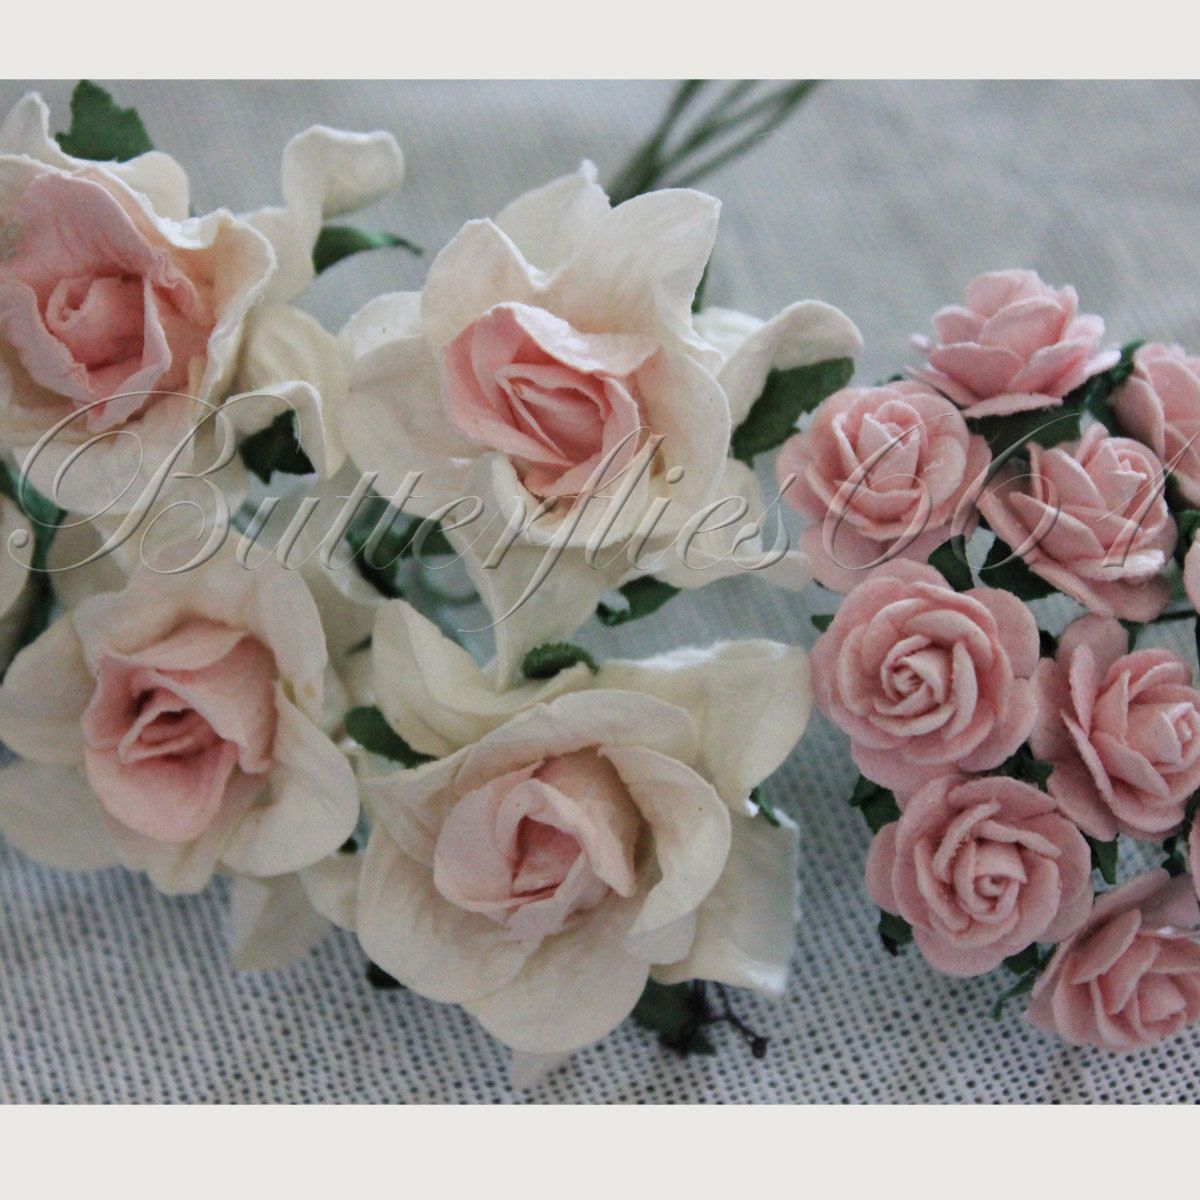 15 Handmade Mulberry Paper Flowers Mixed Sizes Of Pink Tone Wedding